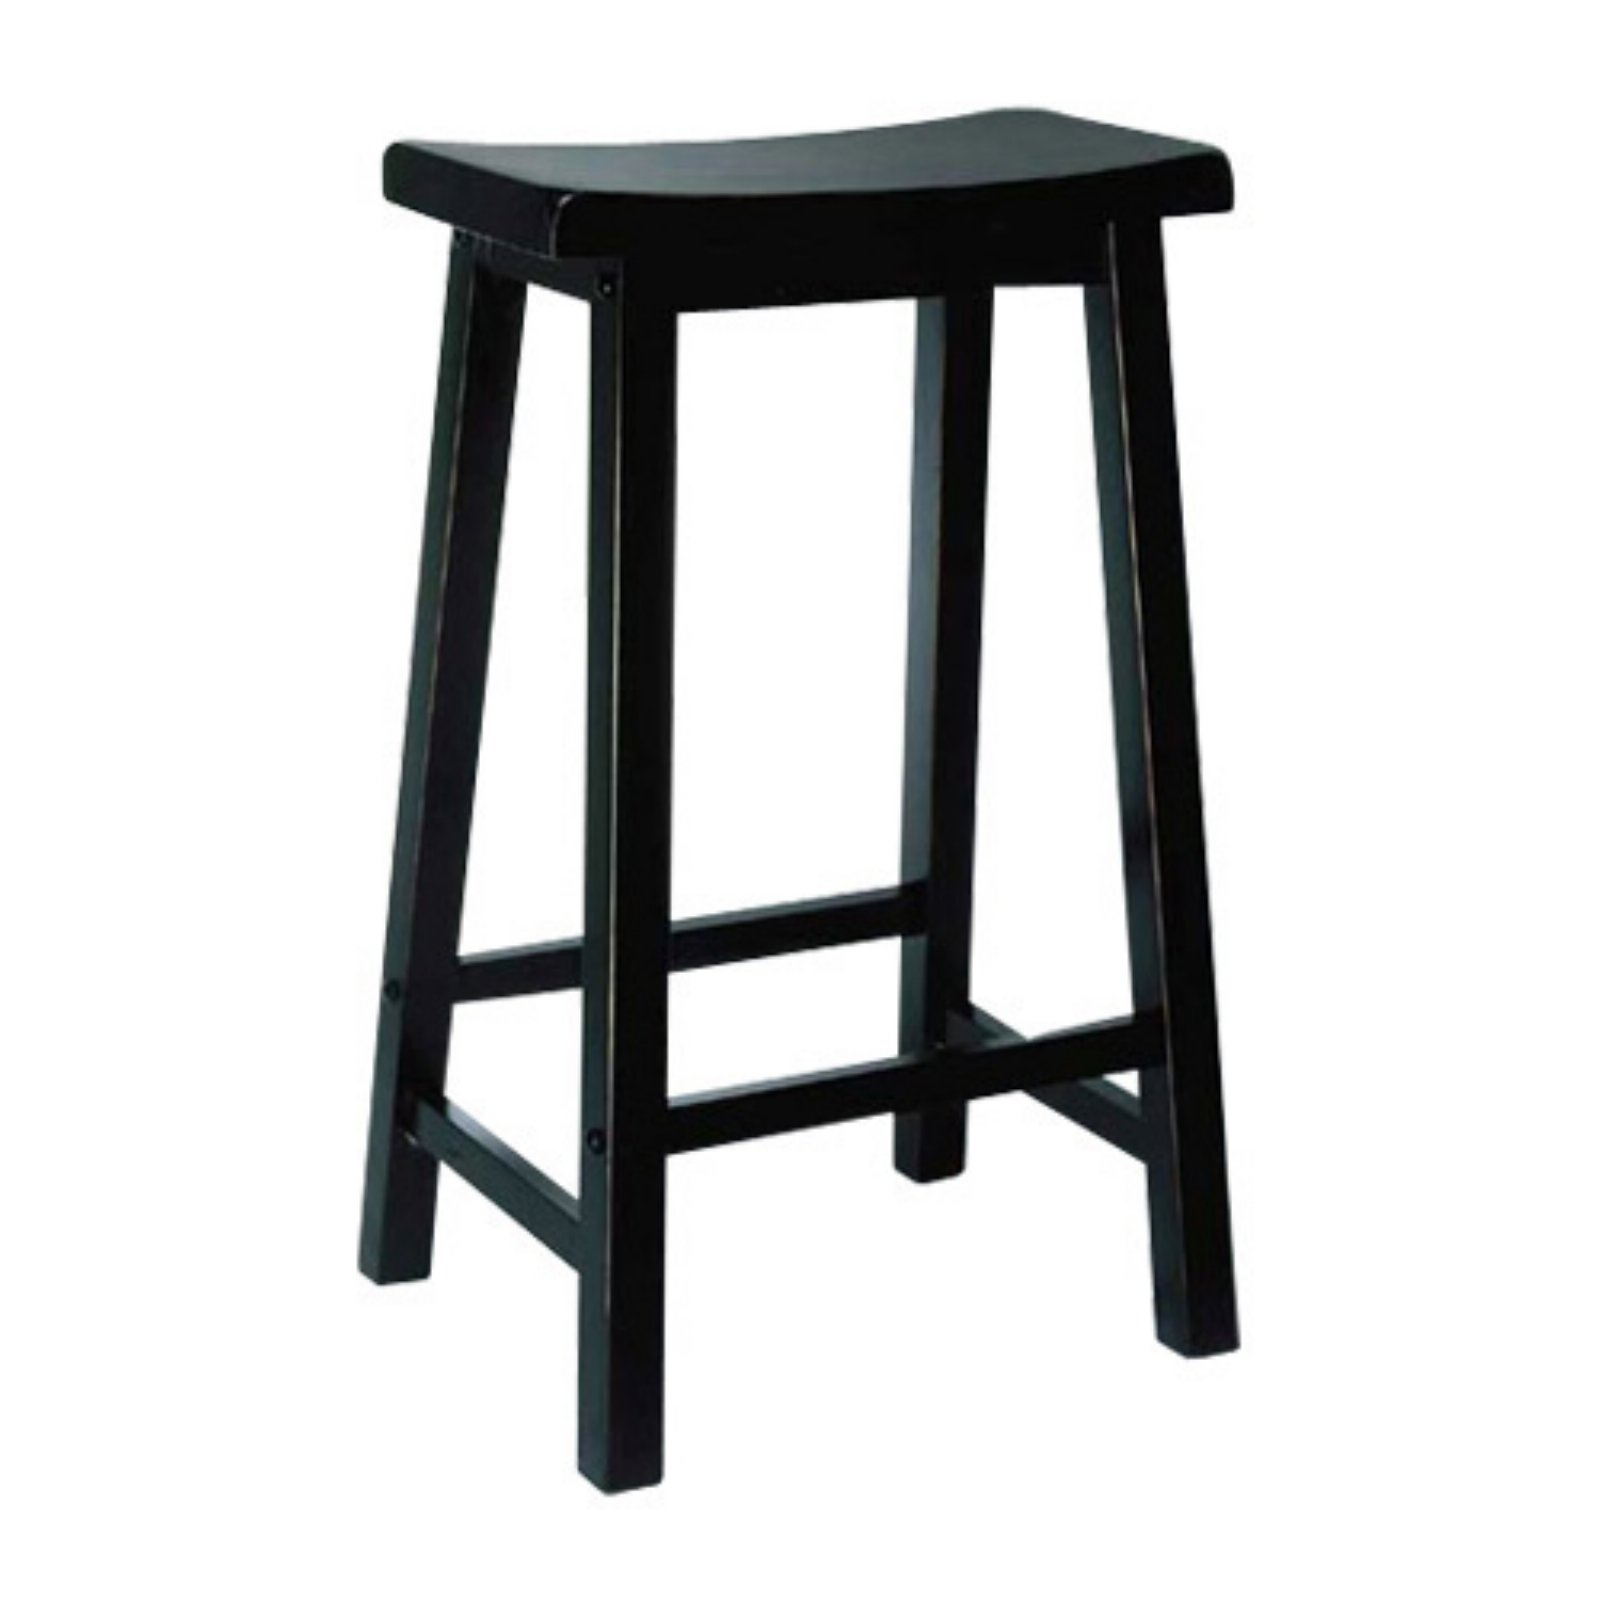 "Powell ""Antique Black"" with Sand Through Terra Cotta Bar Stool, 29"" Seat Height by Powell Furniture"